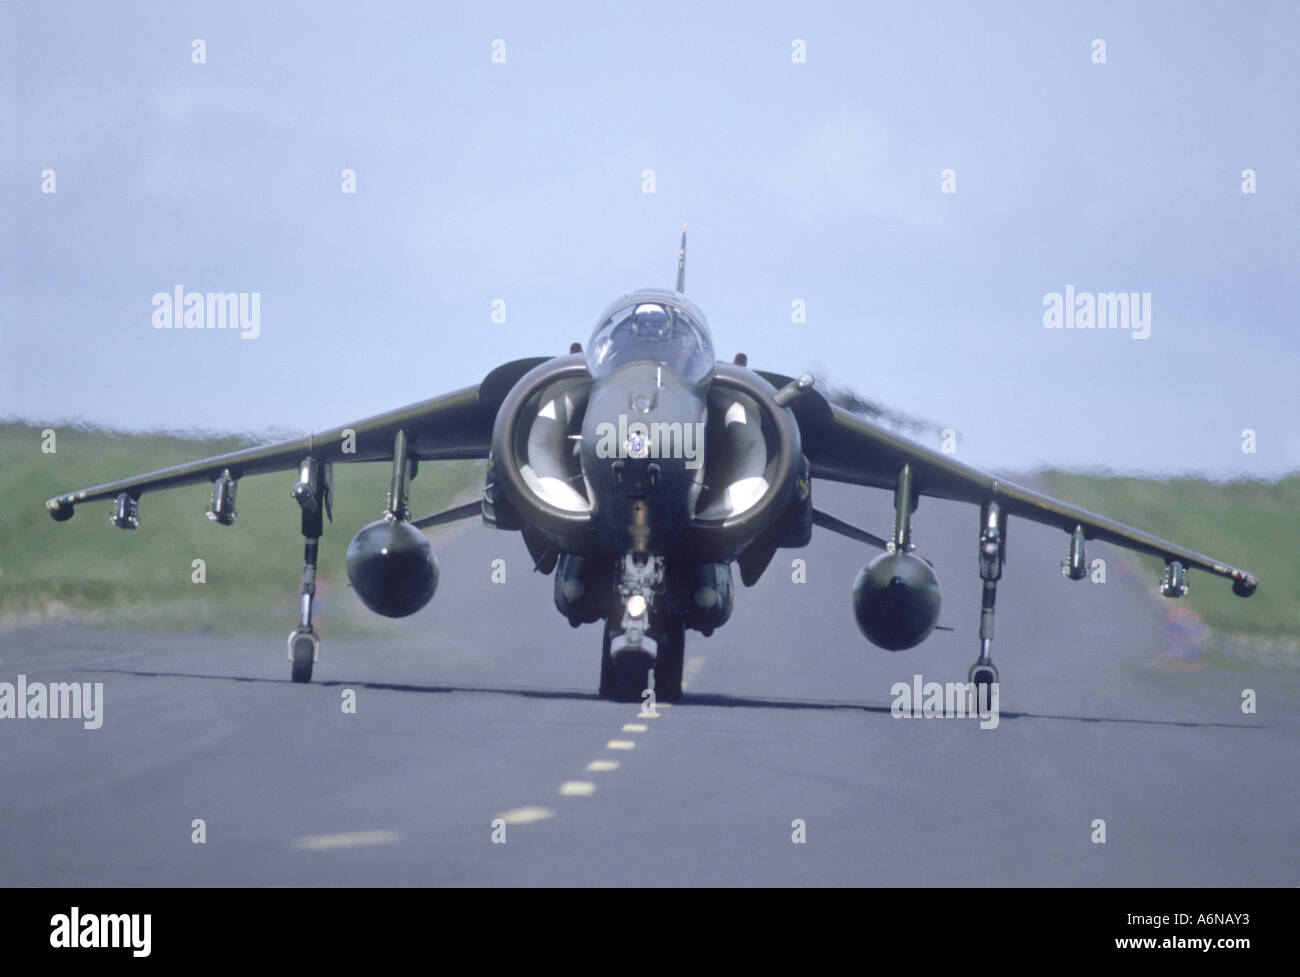 British Aerospace Harrier at RAF Lossiemouth Air Base GAV 2279-237